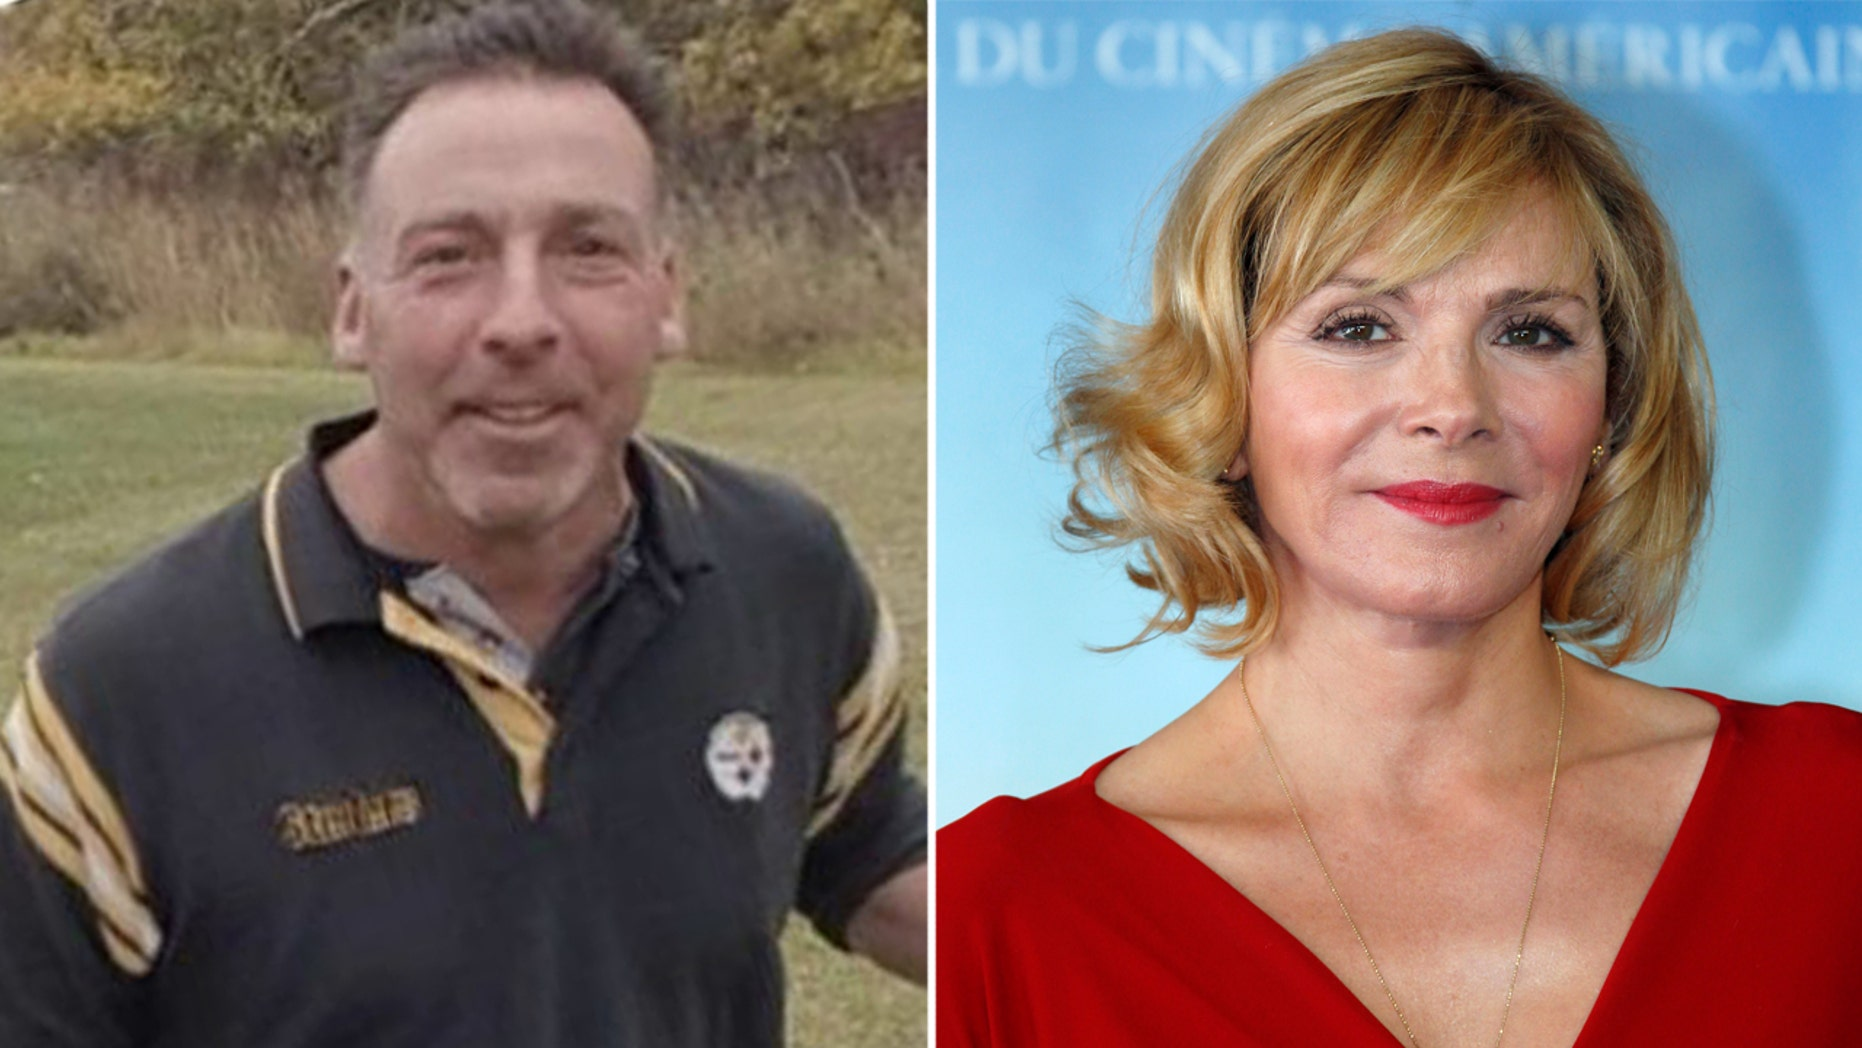 Kim Cattrall announced the death of her brother, 55-year-old Christopher Cattrall, on social media Sunday.